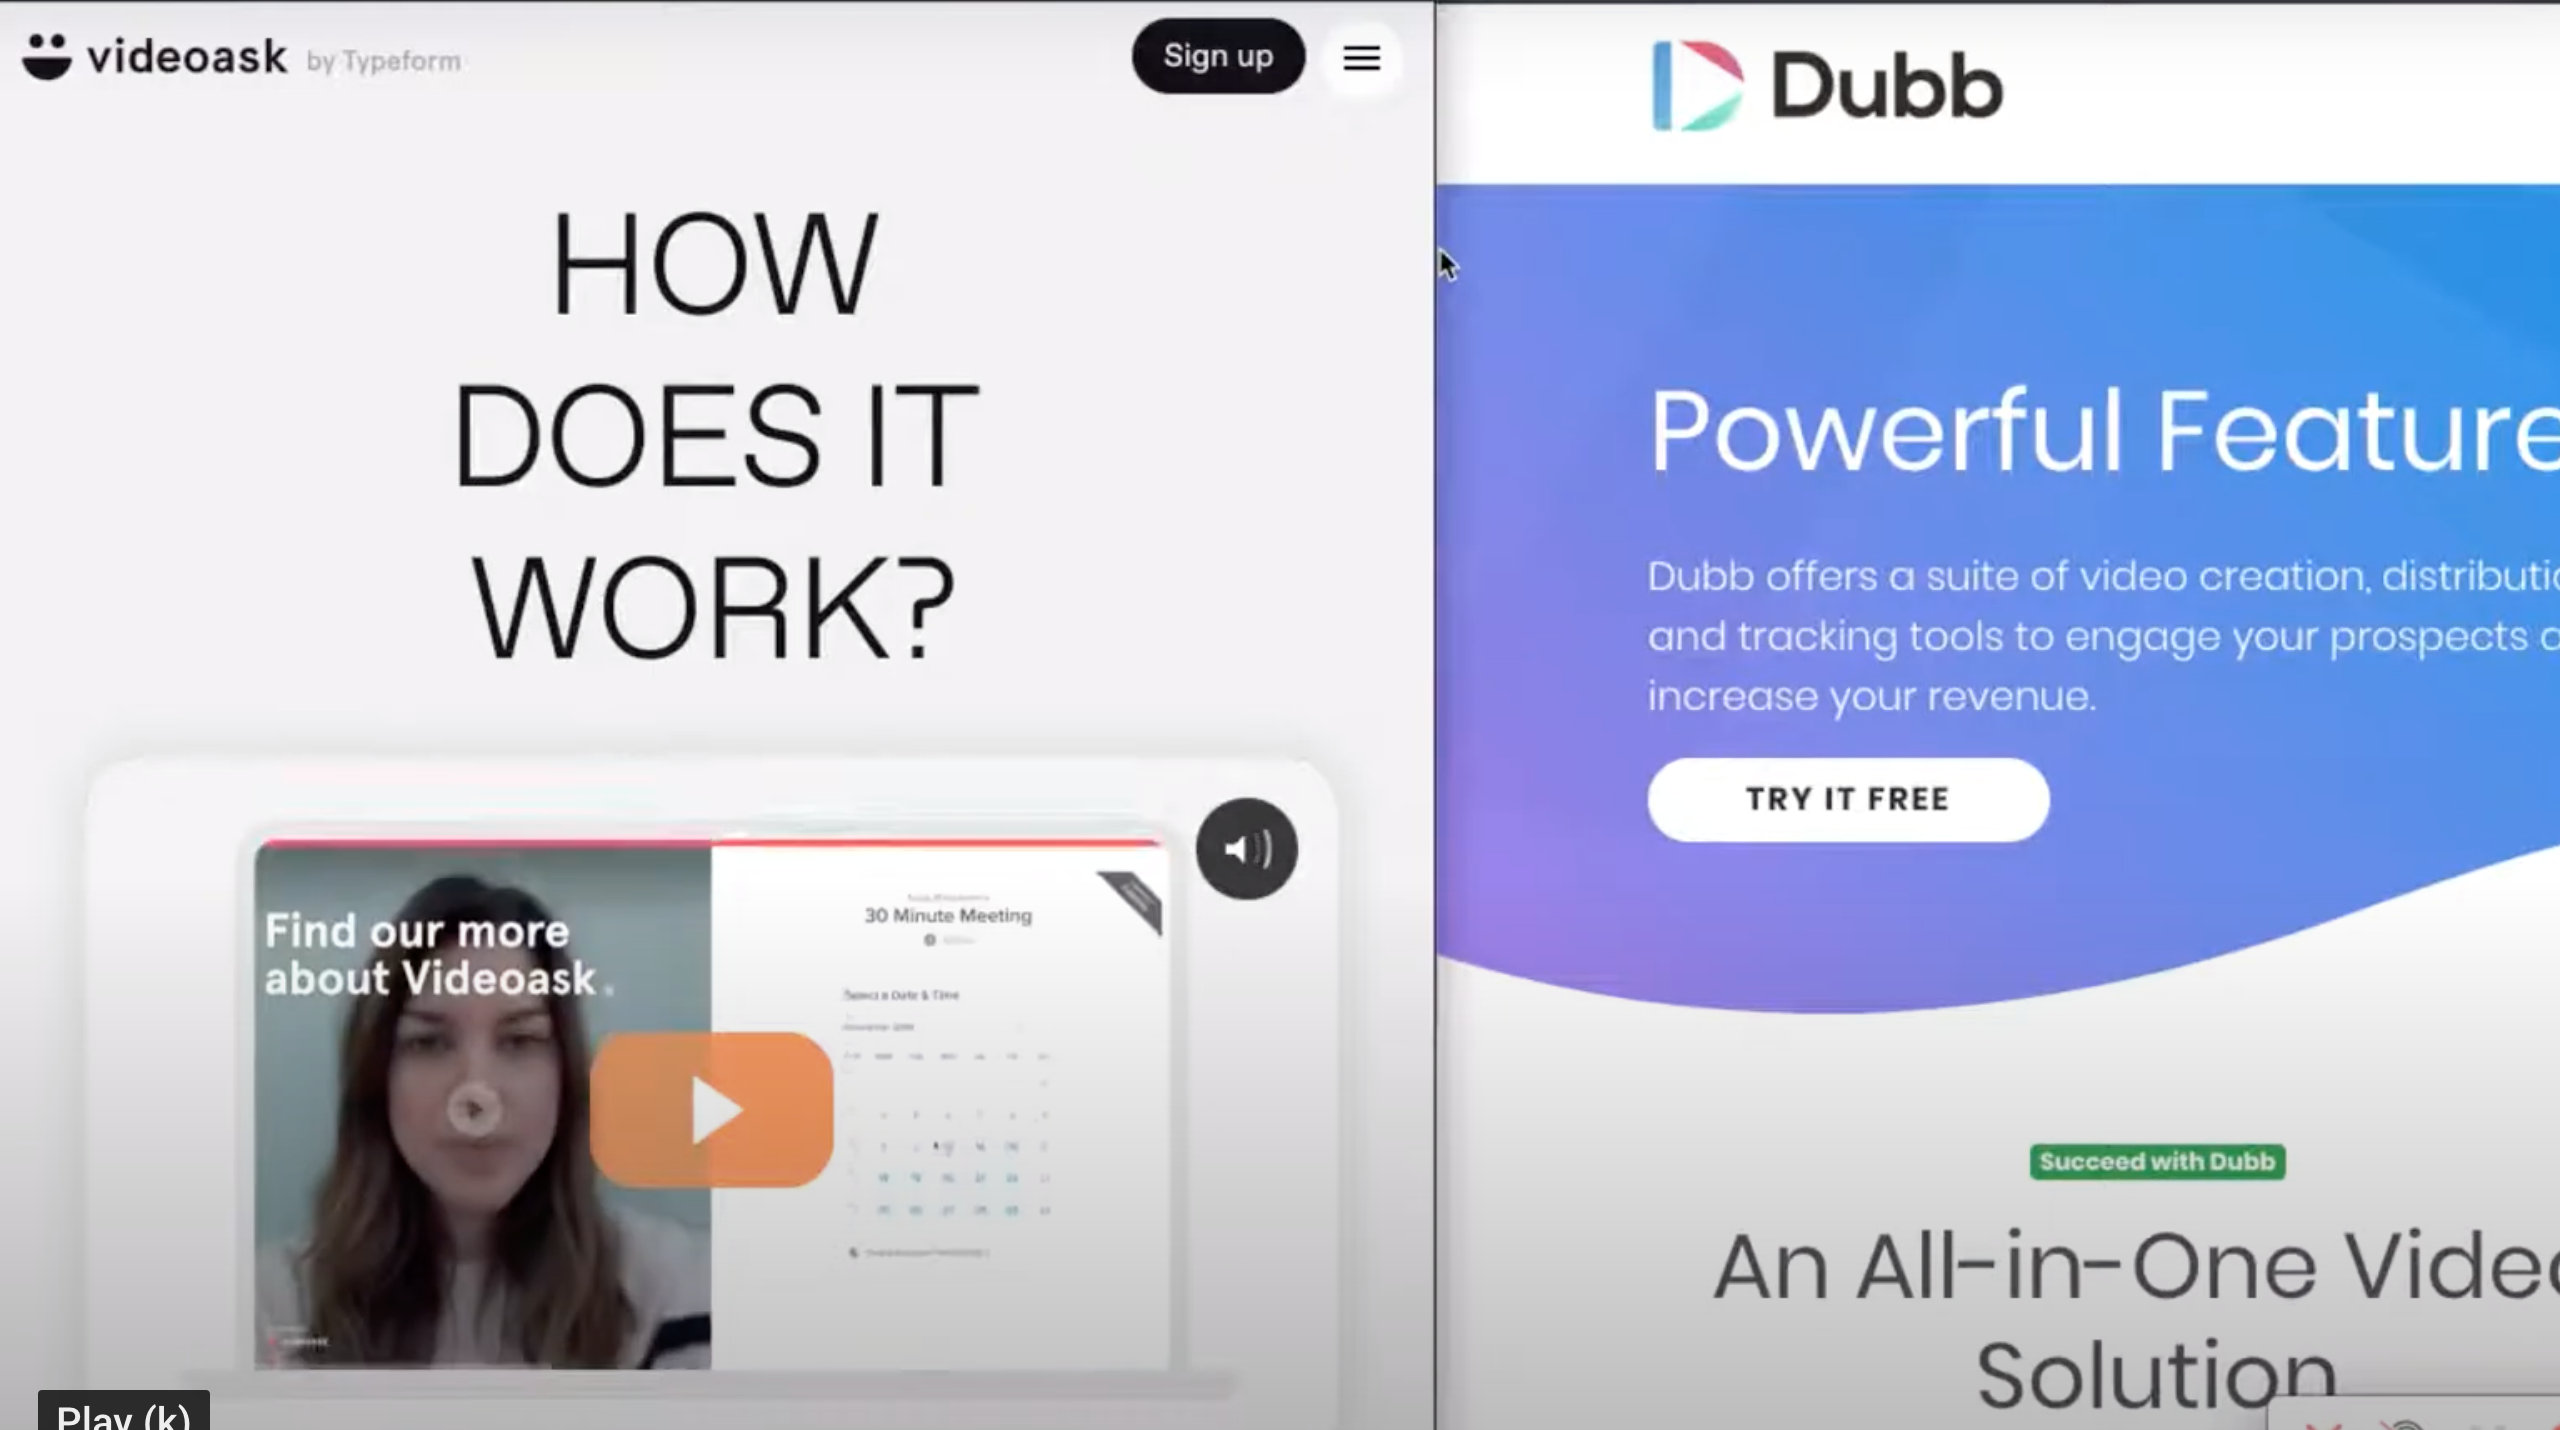 VideoAsk compared to Dubb